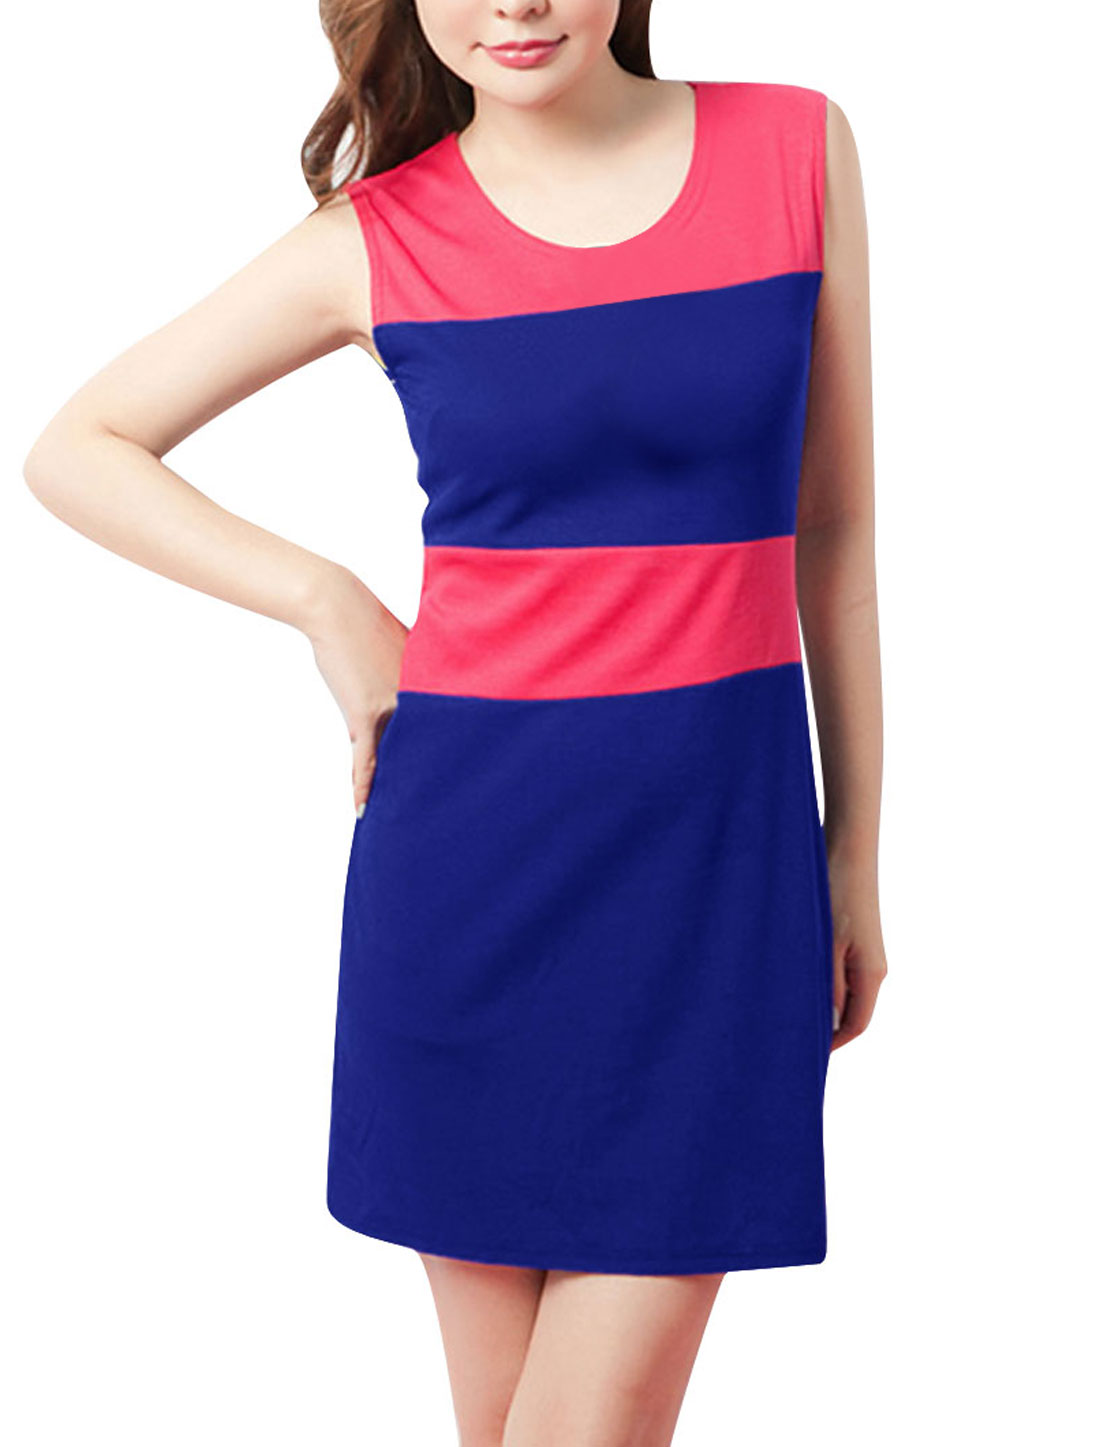 Woman NEW Round Neck Color Blocking Royalblue Fuchsia Casual Mini Dress XS